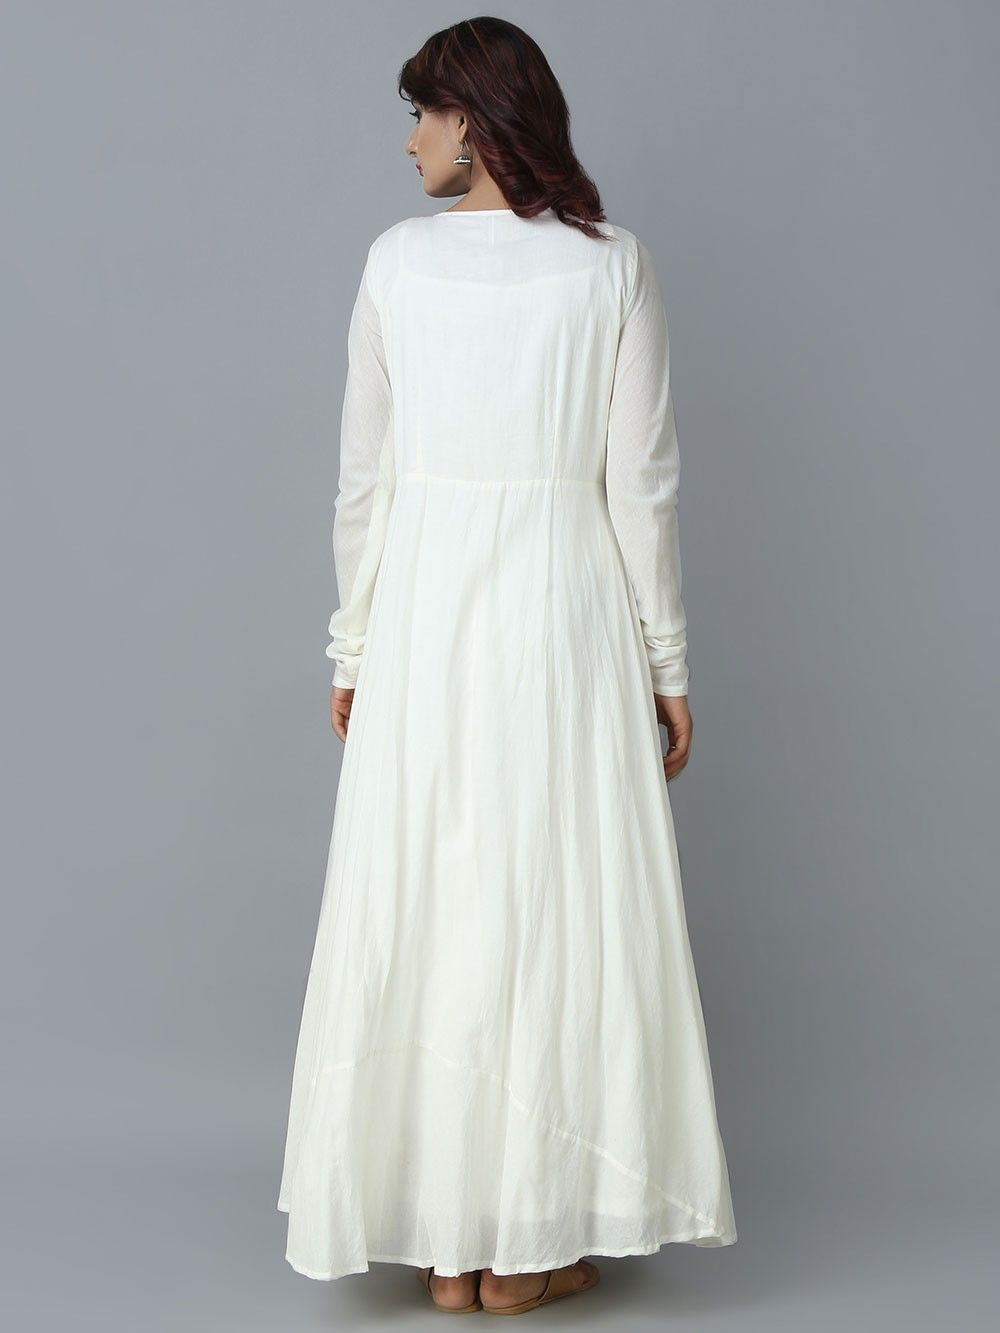 Buy White Cotton Long Angrakha Dress Online At Theloom